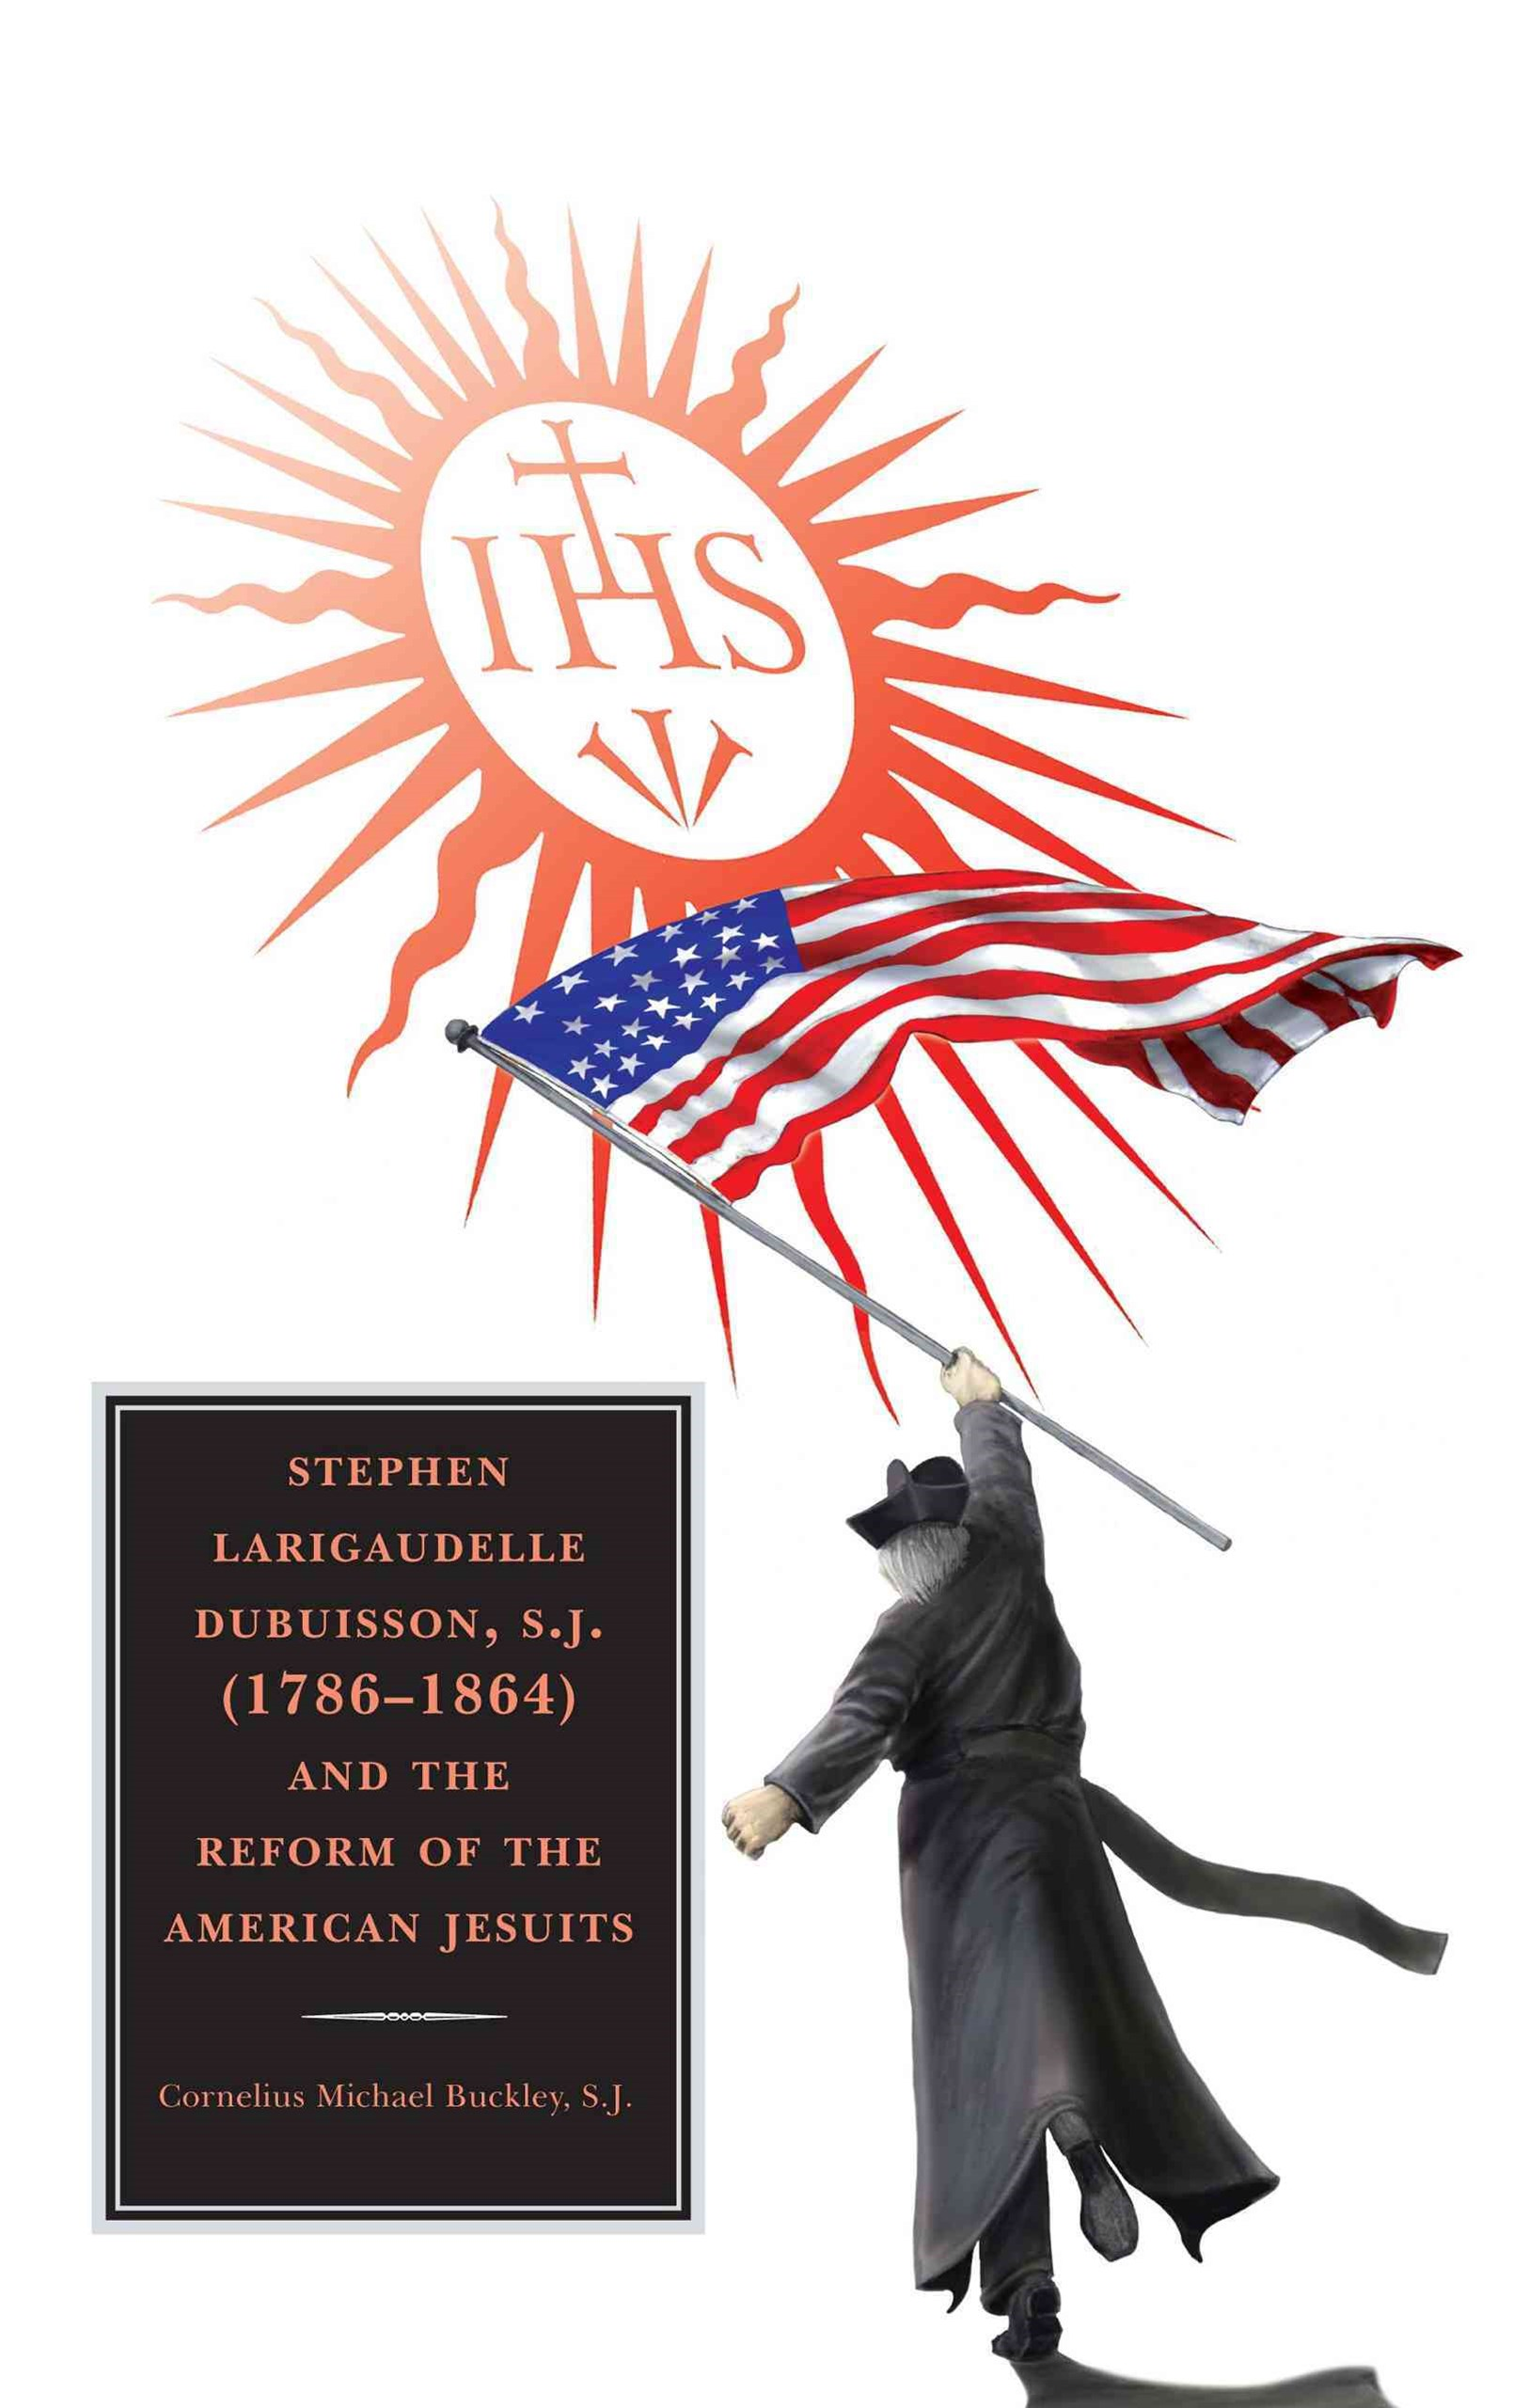 Stephen Larigaudelle Dubuisson, S. J. (1786-1864) and the Reform of the American Jesuits